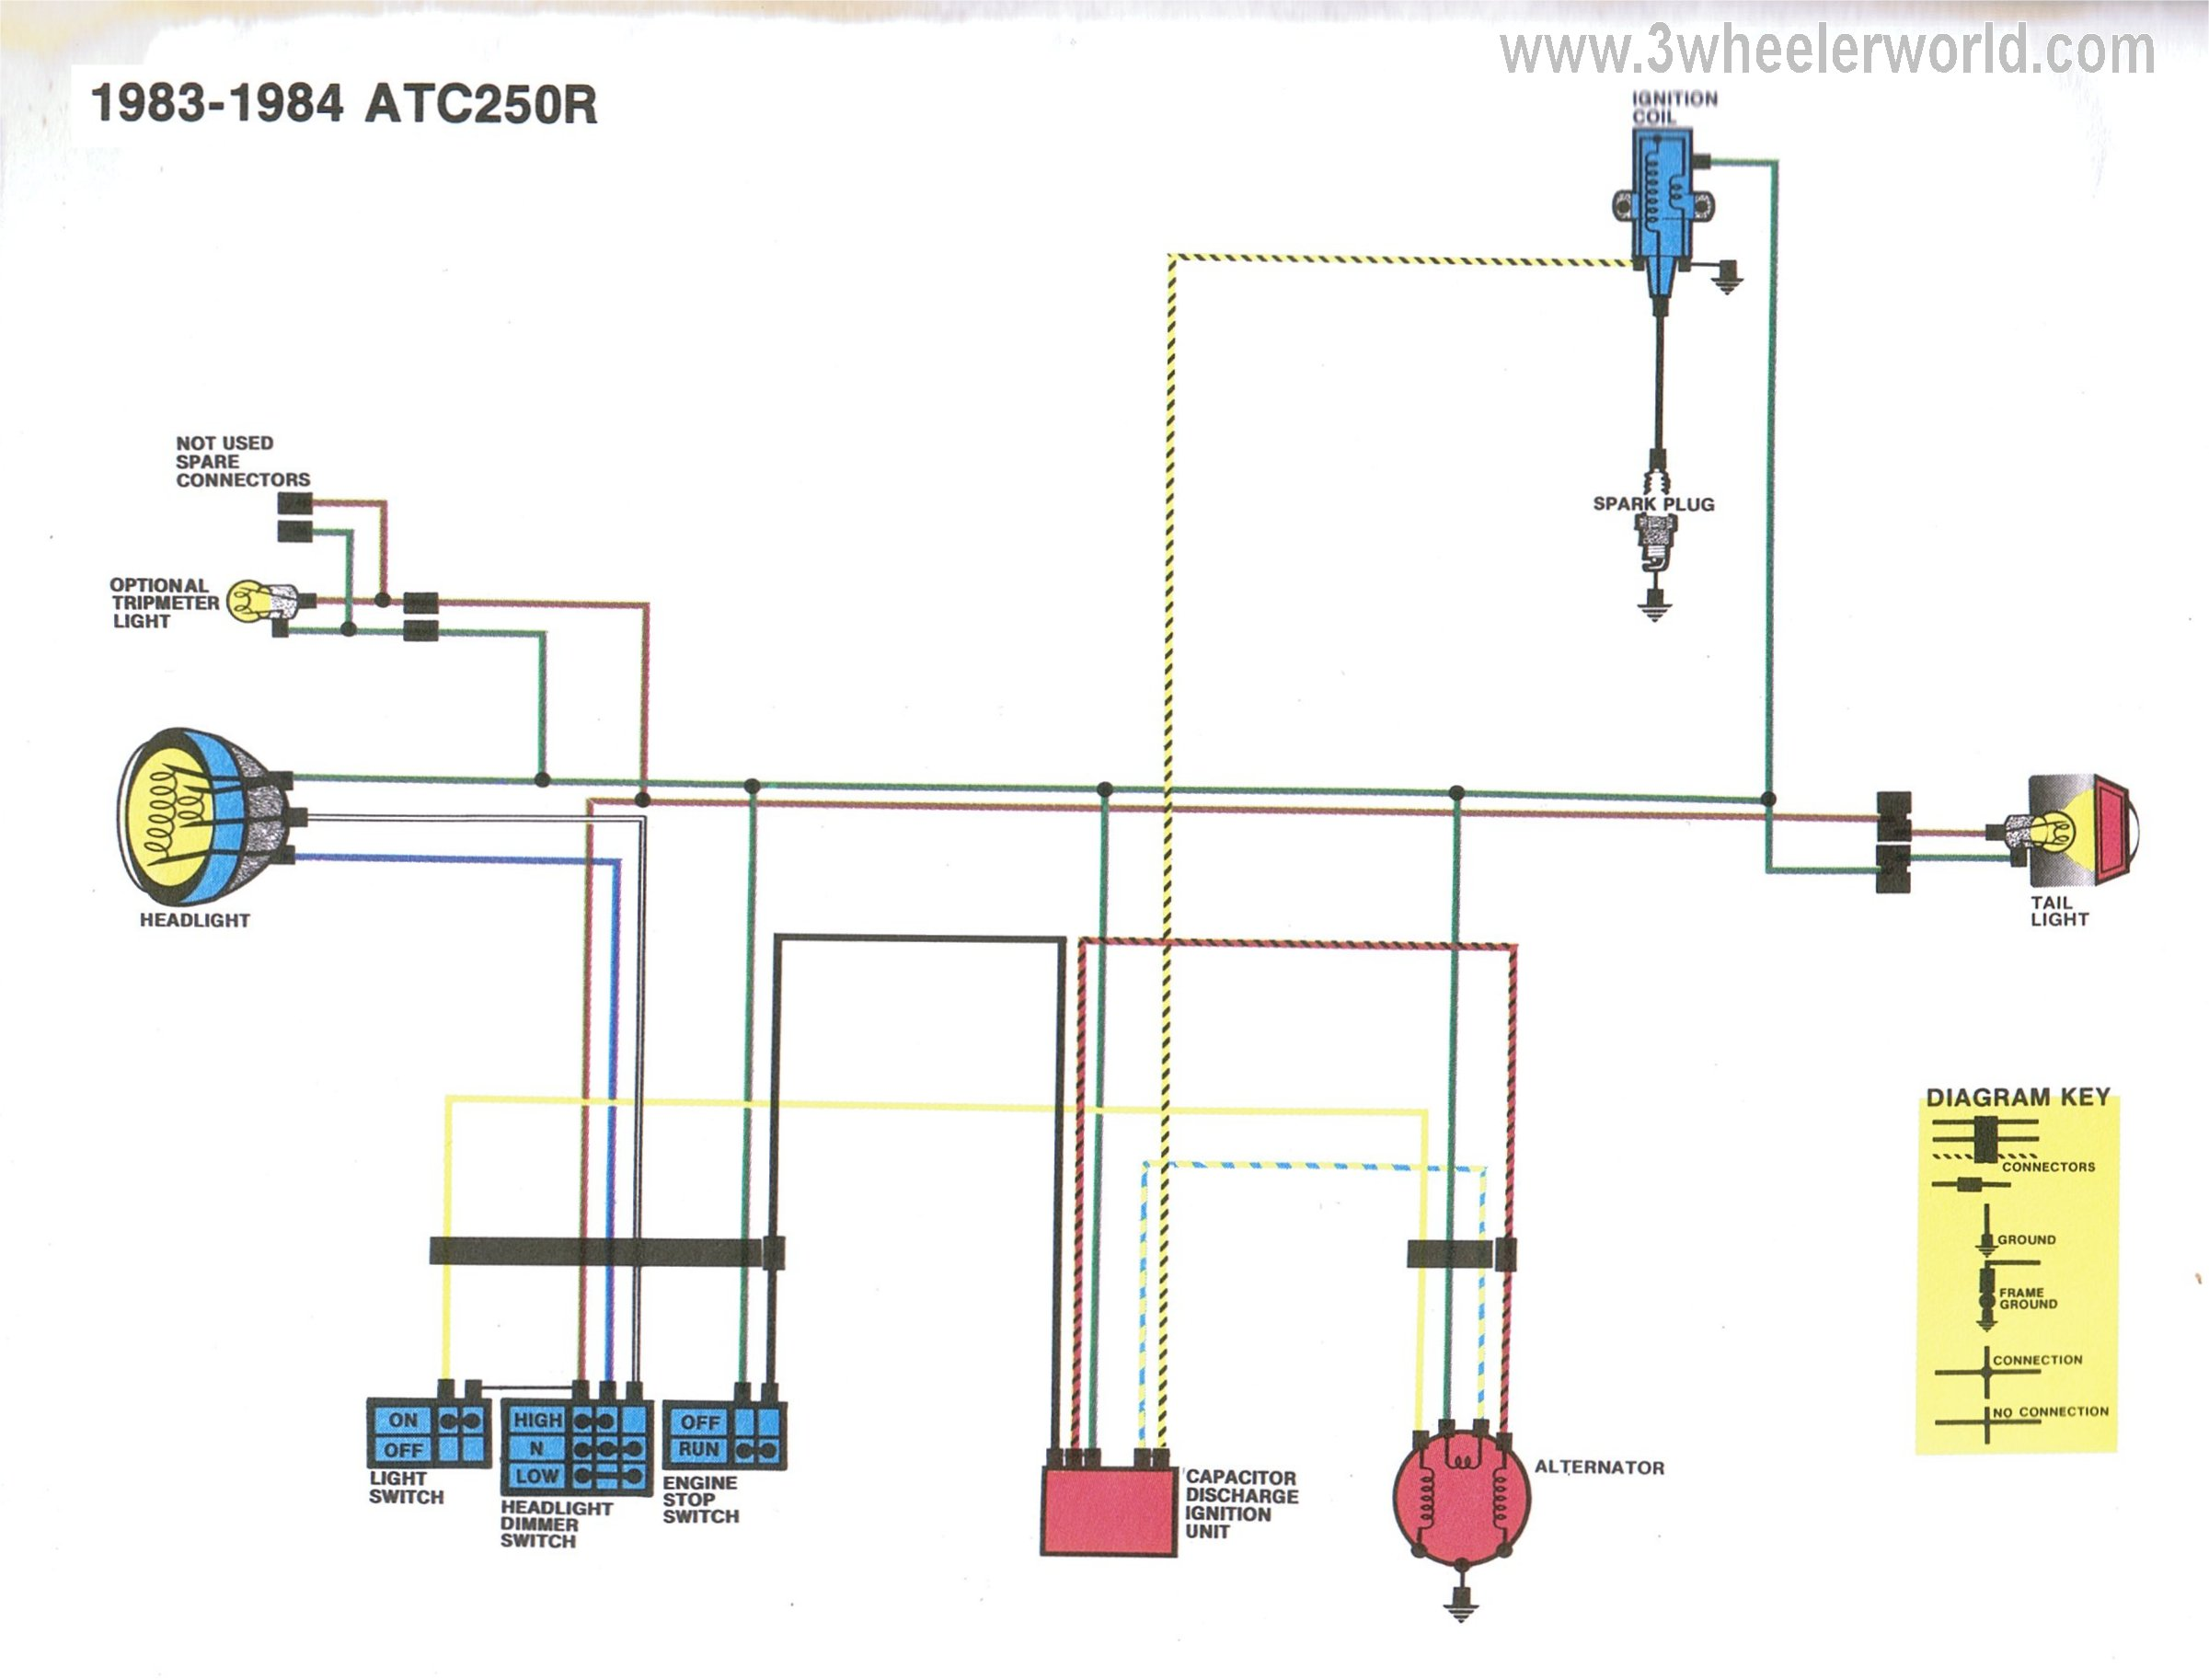 red ac wiring diagram energized wiring diagram Basic Electrical Wiring Diagrams schematic wiring red wiring diagramschematic wiring red wiring diagram